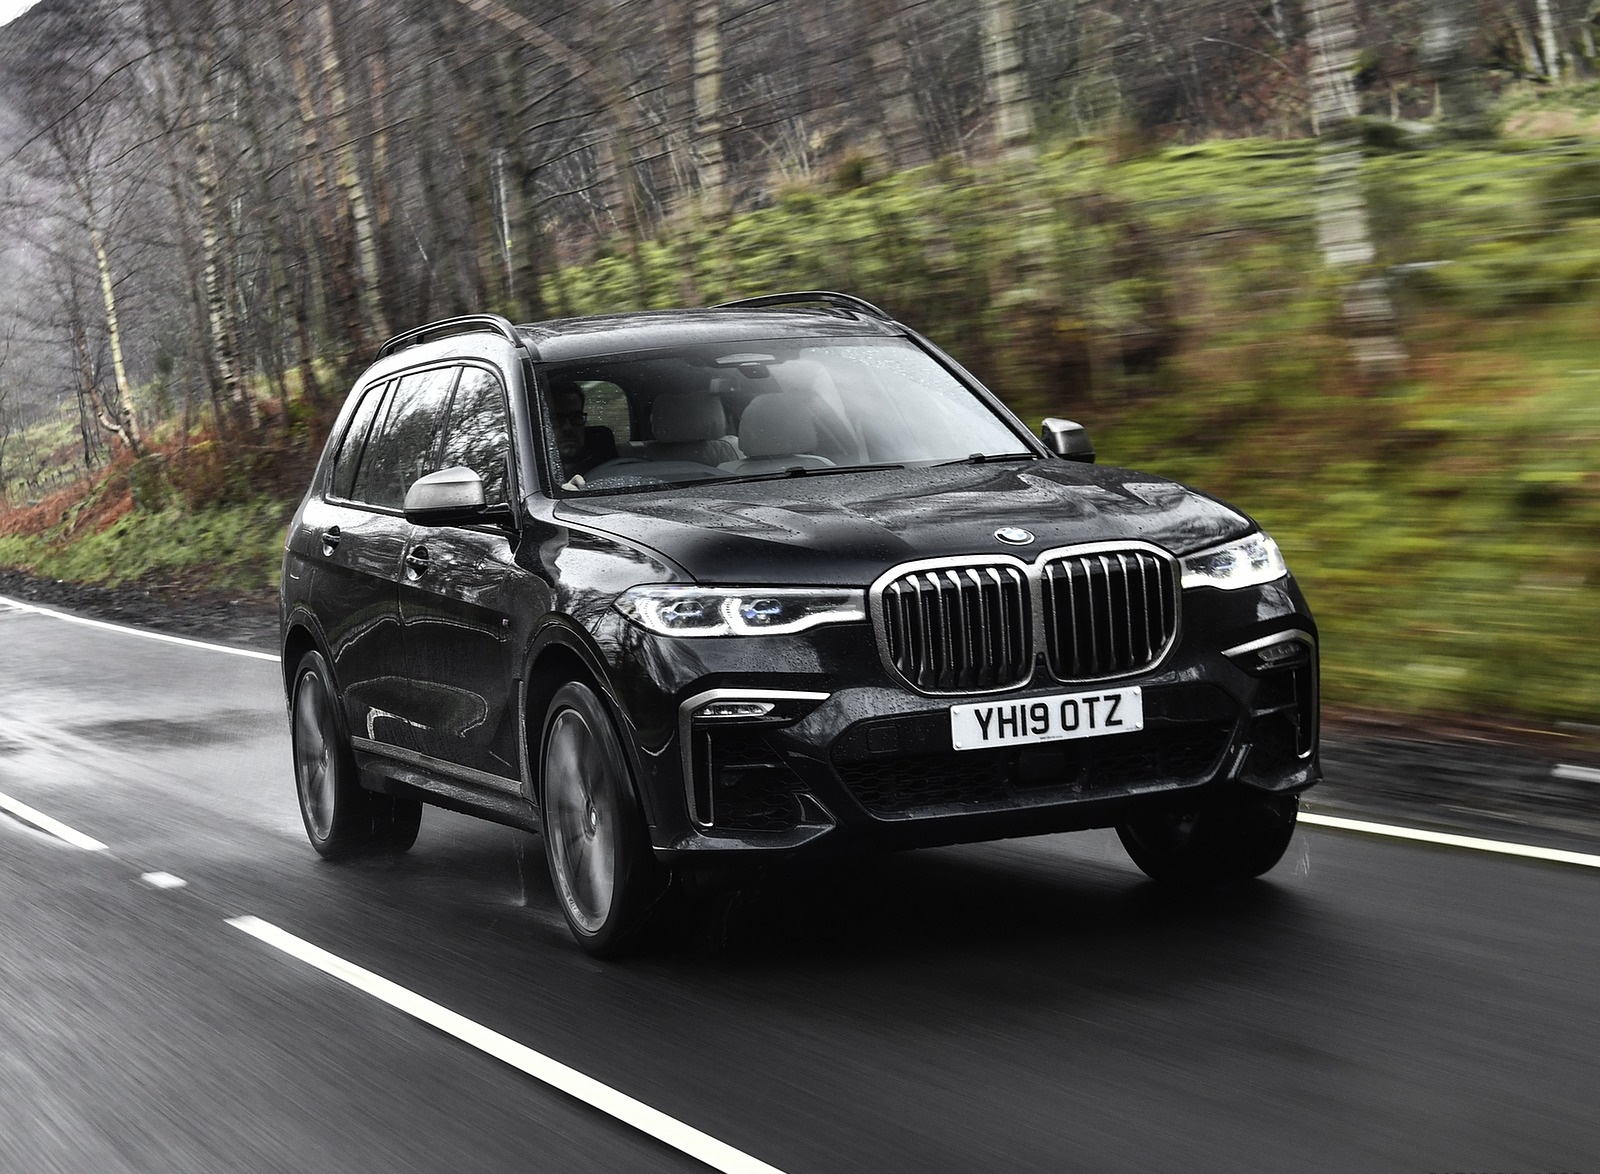 2019 BMW X7 M50d (UK-Spec) Front Three-Quarter Wallpapers (5)